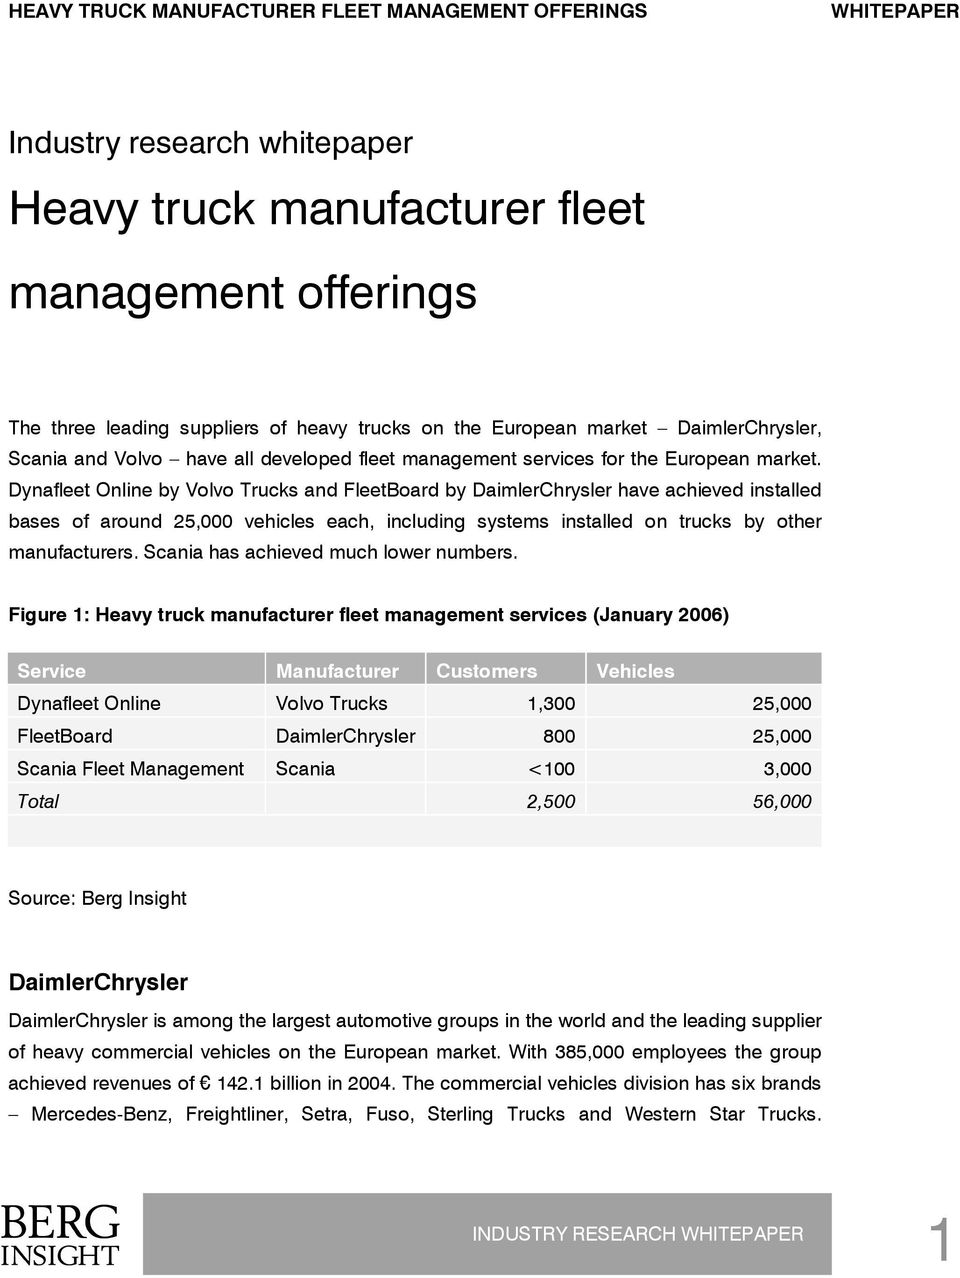 Dynafleet Online by Volvo Trucks and FleetBoard by DaimlerChrysler have achieved installed bases of around 25,000 vehicles each, including systems installed on trucks by other manufacturers.